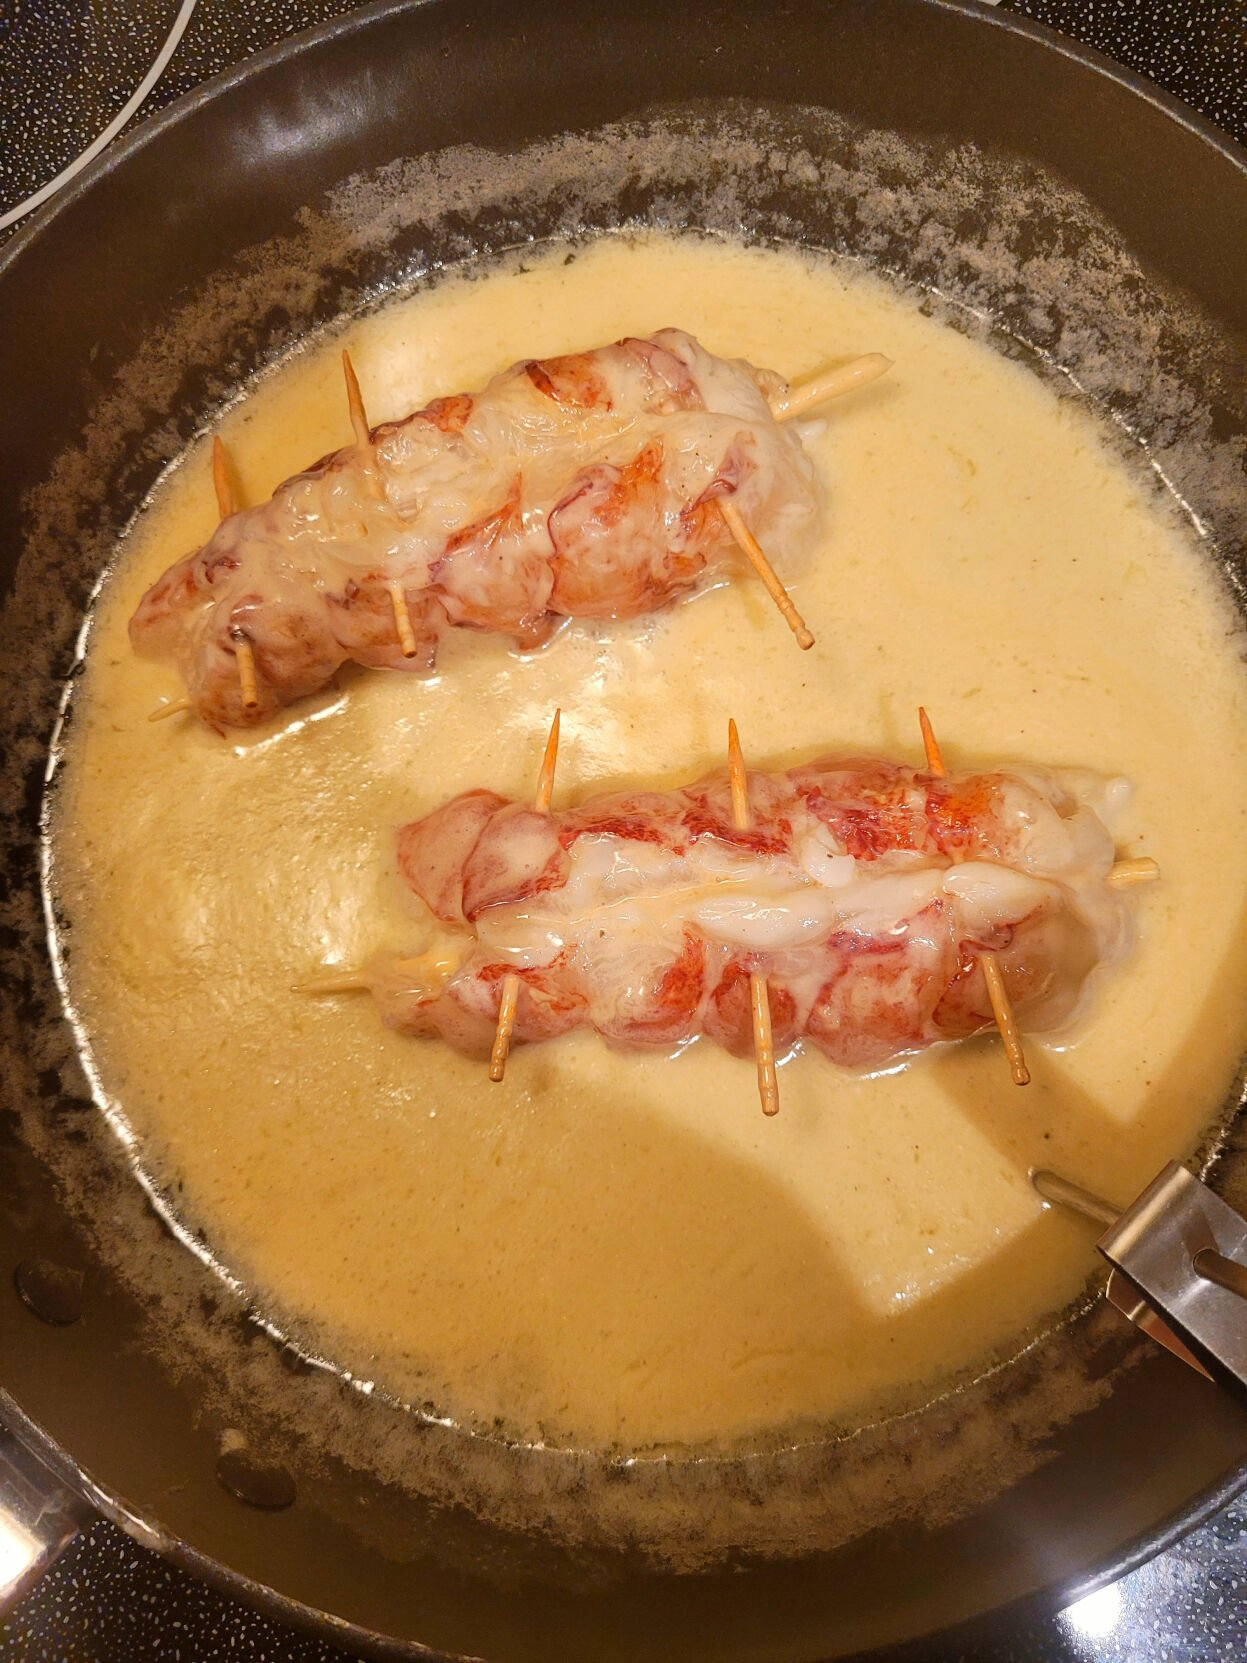 Butter-poached lobster tails